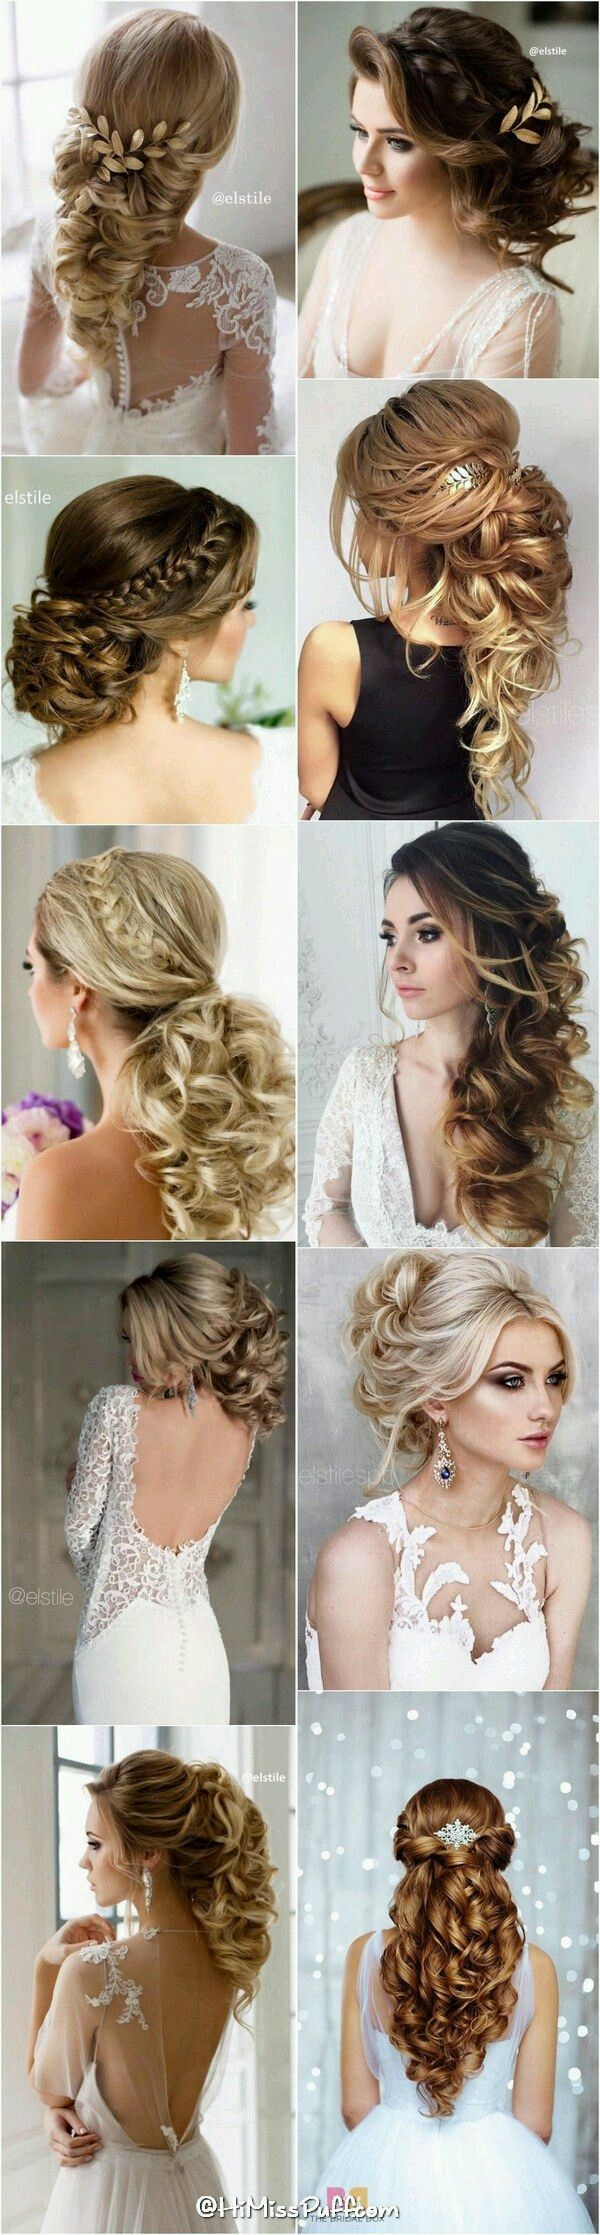 Arabic hair styles for wedding day Prom updo Pinterest Wedding